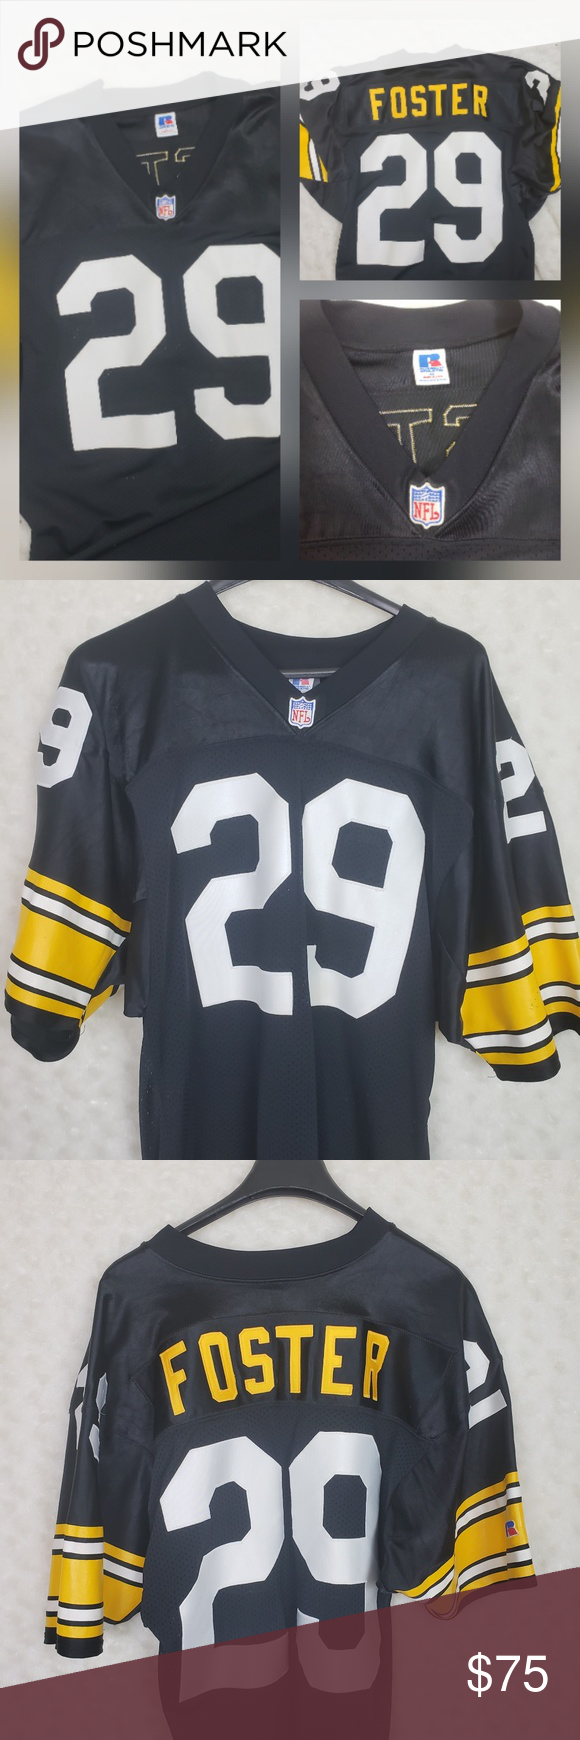 3392bf40e Vintage Pittsburgh Steelers Football Jersey Barry Foster  29 Vintage Jersey